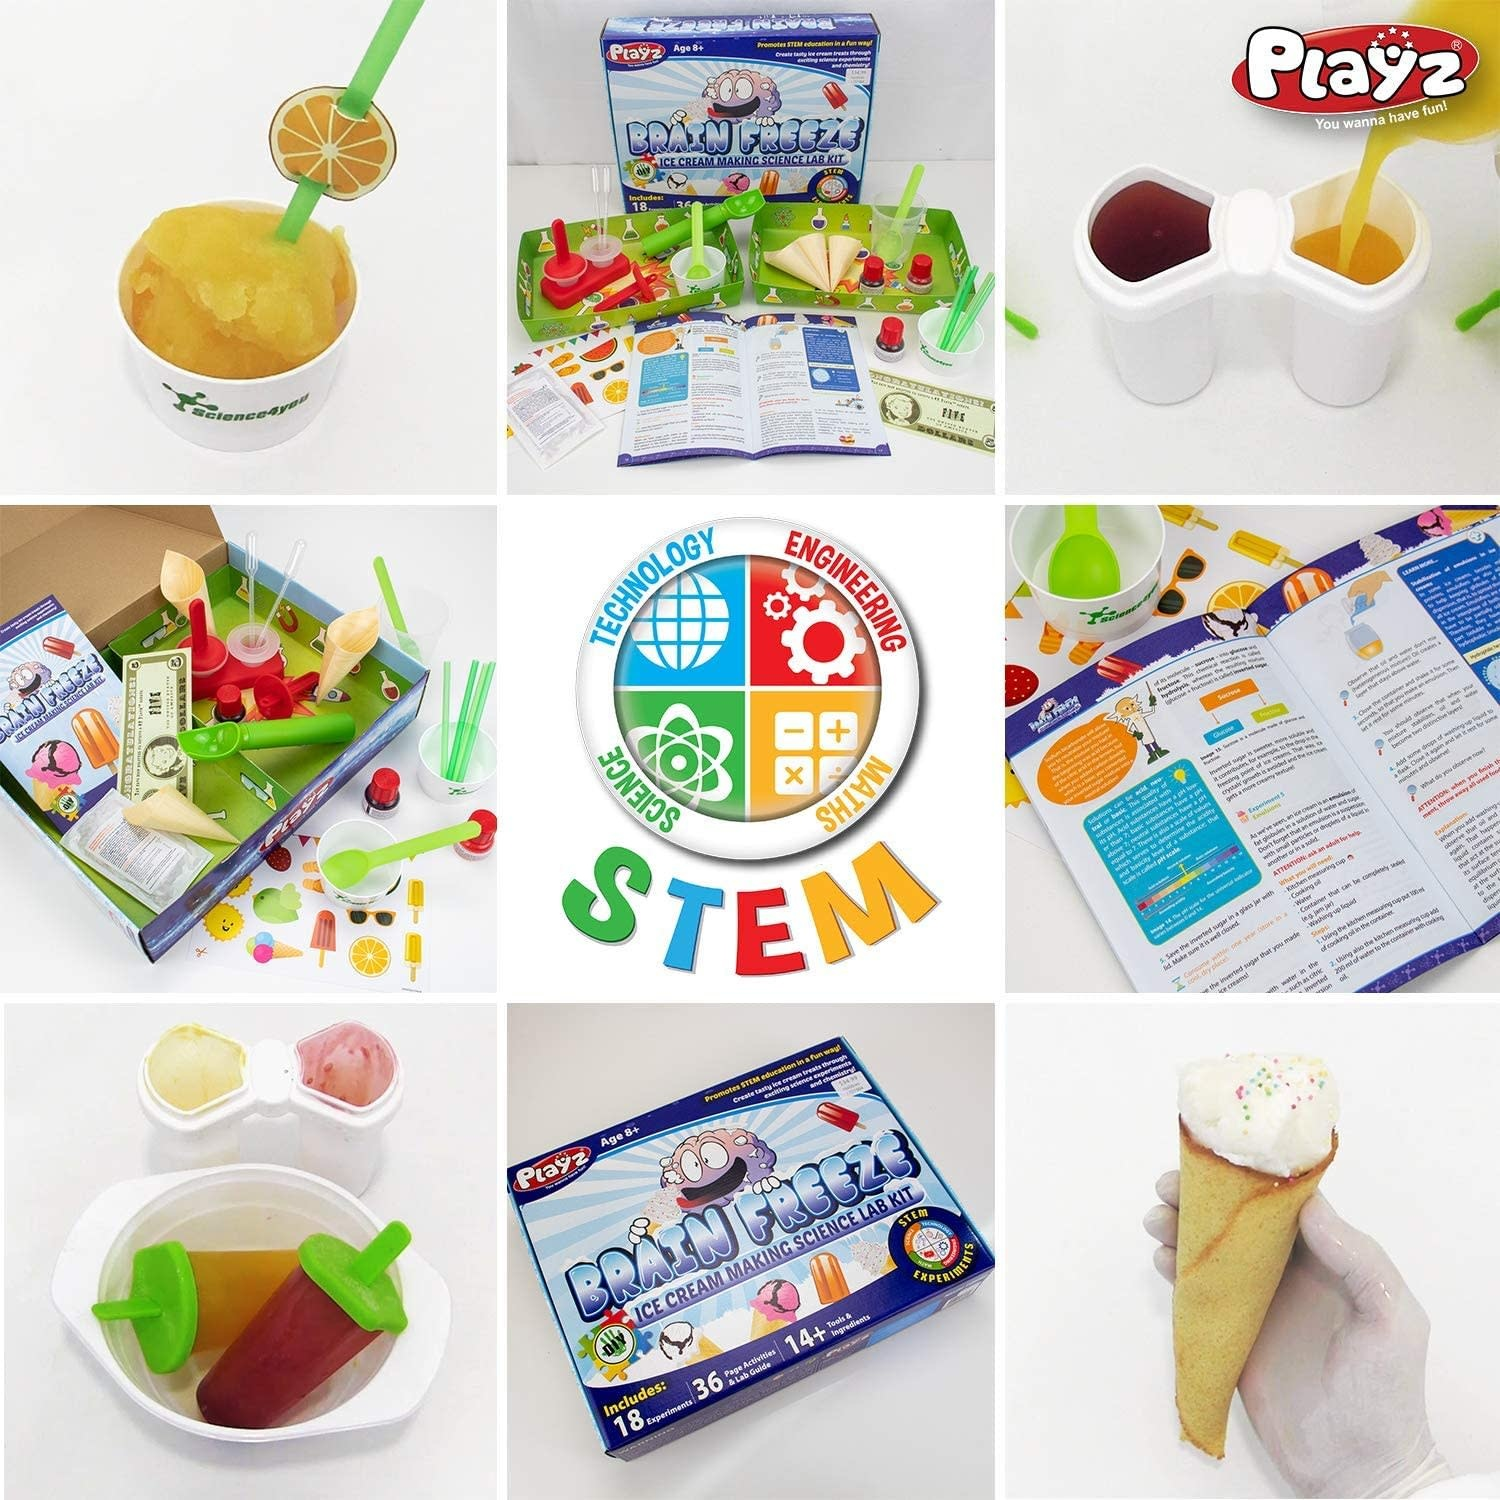 Playz Brain Freeze Ice Cream Making Science Kit